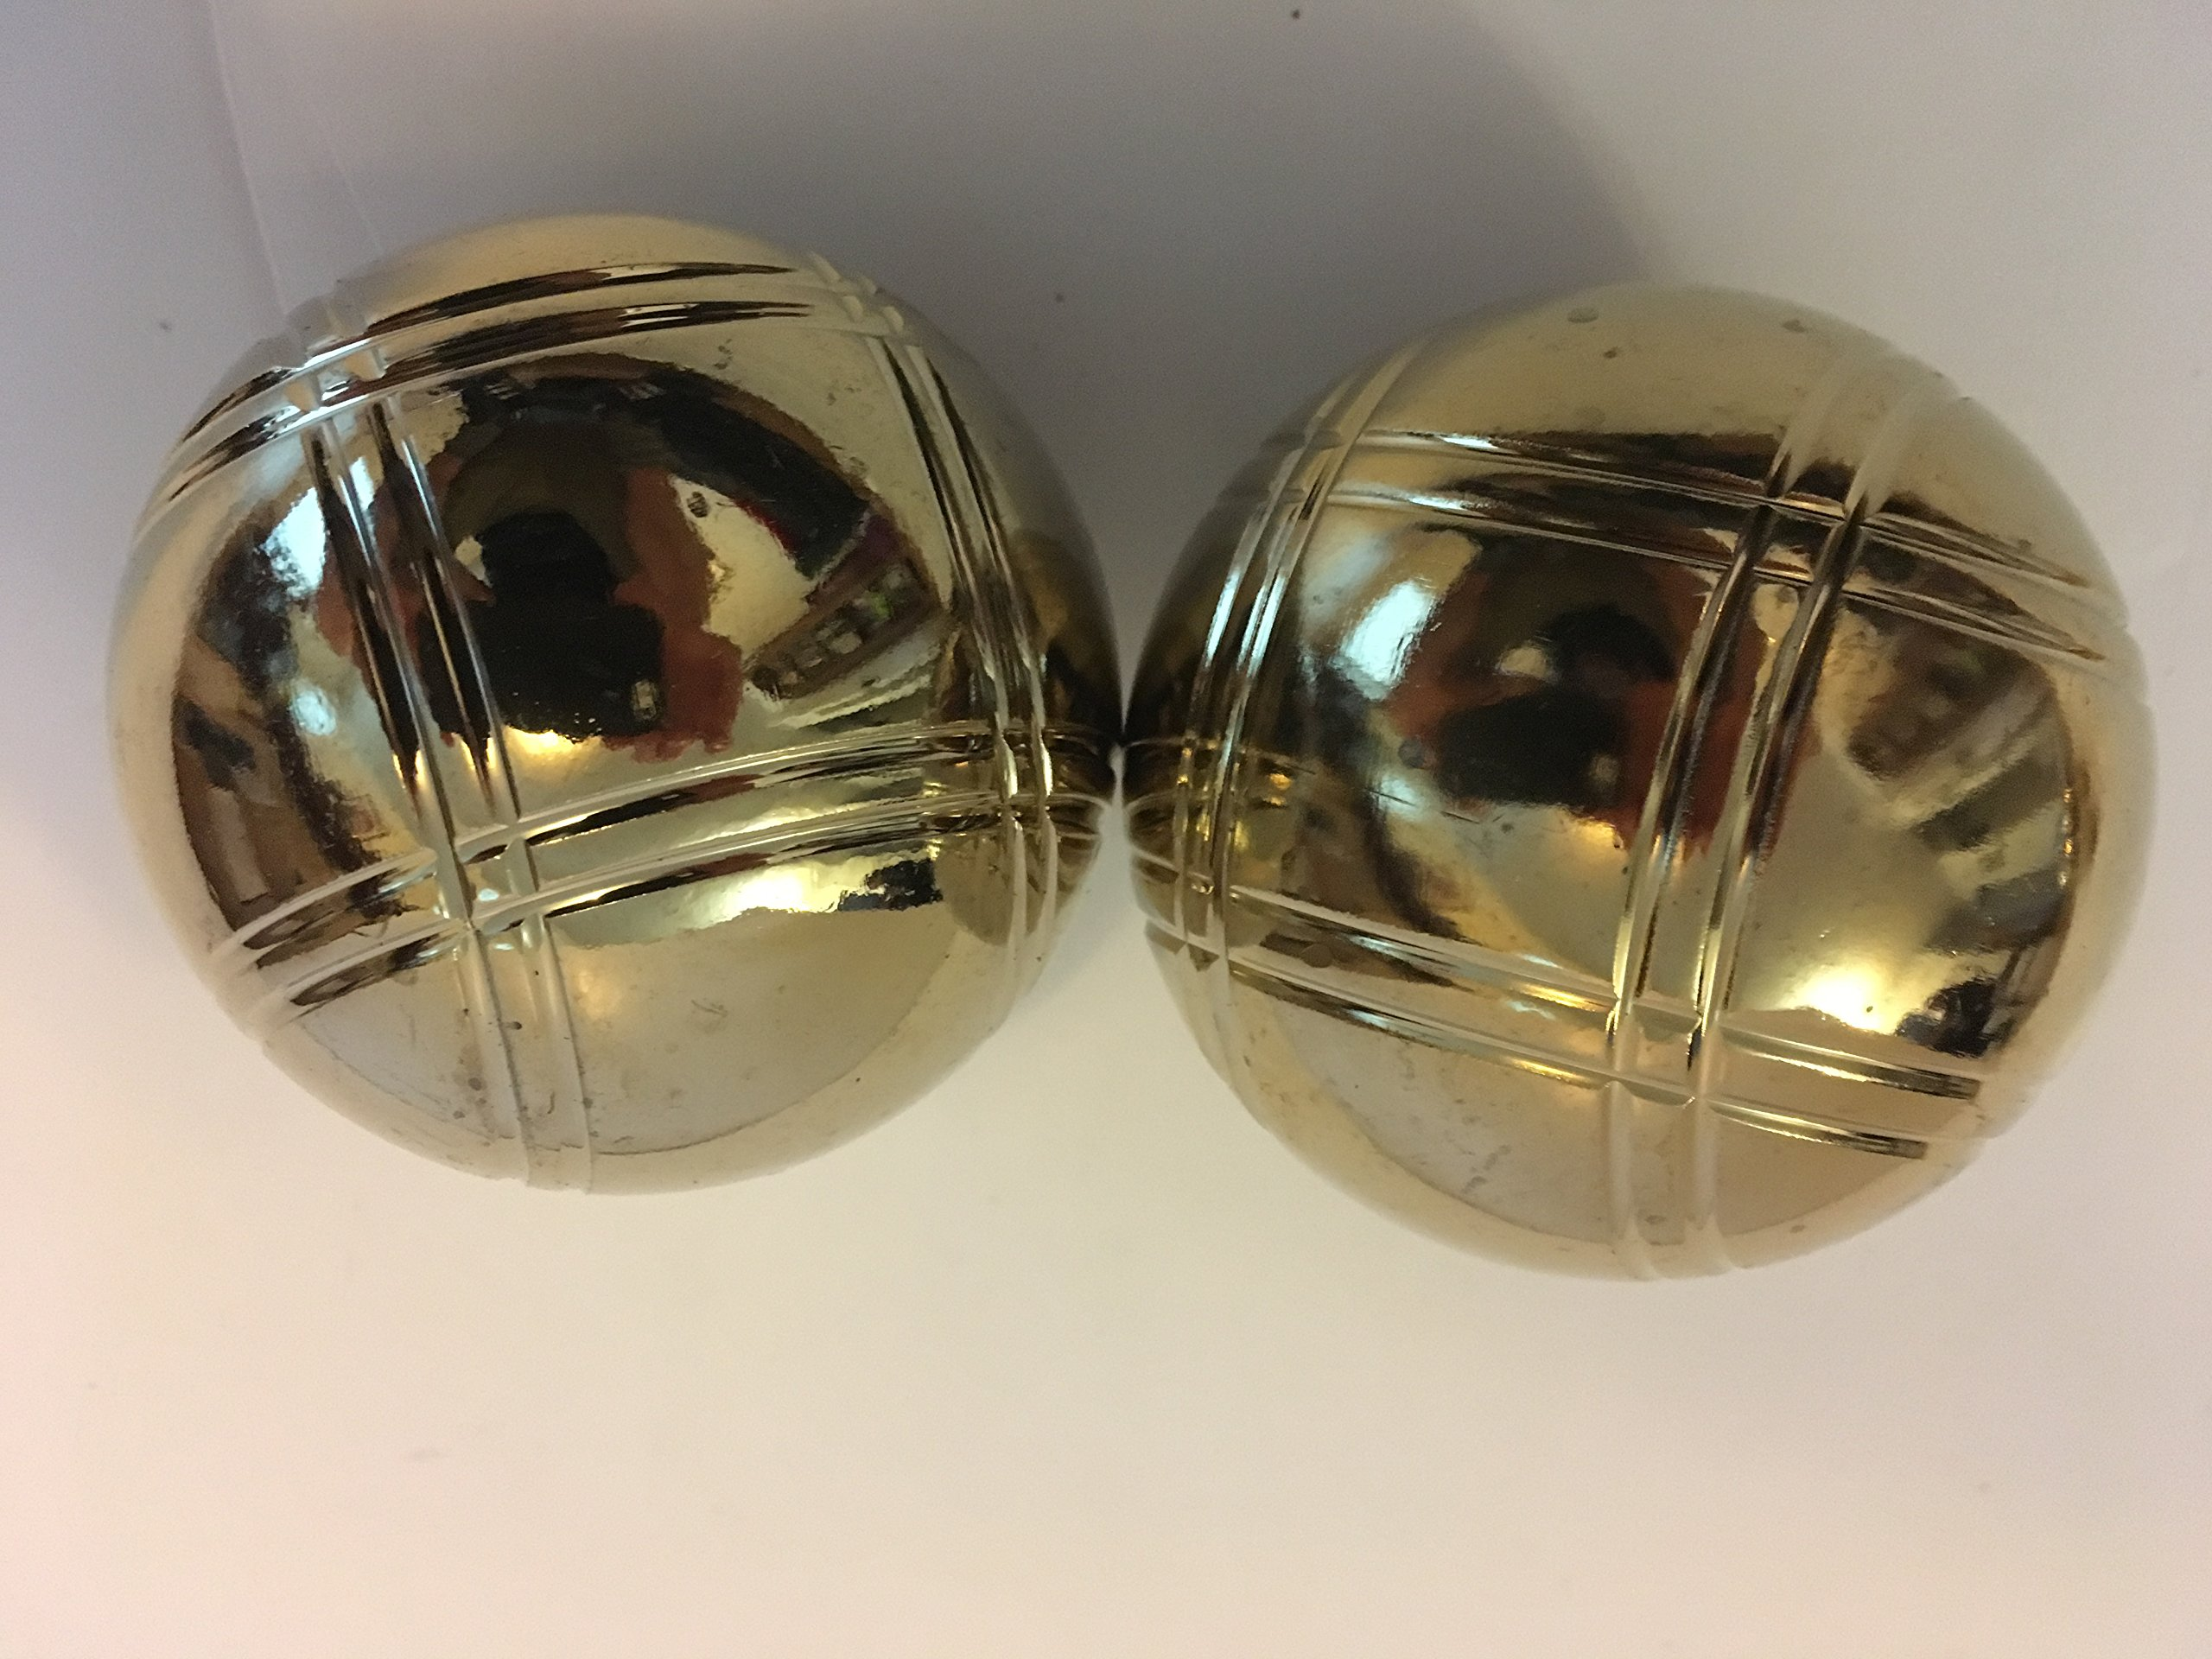 Replacement 73mm Metal Bocce/Petanque Gold Balls - pack of 2 with large criss cross pattern by BuyBocceBalls